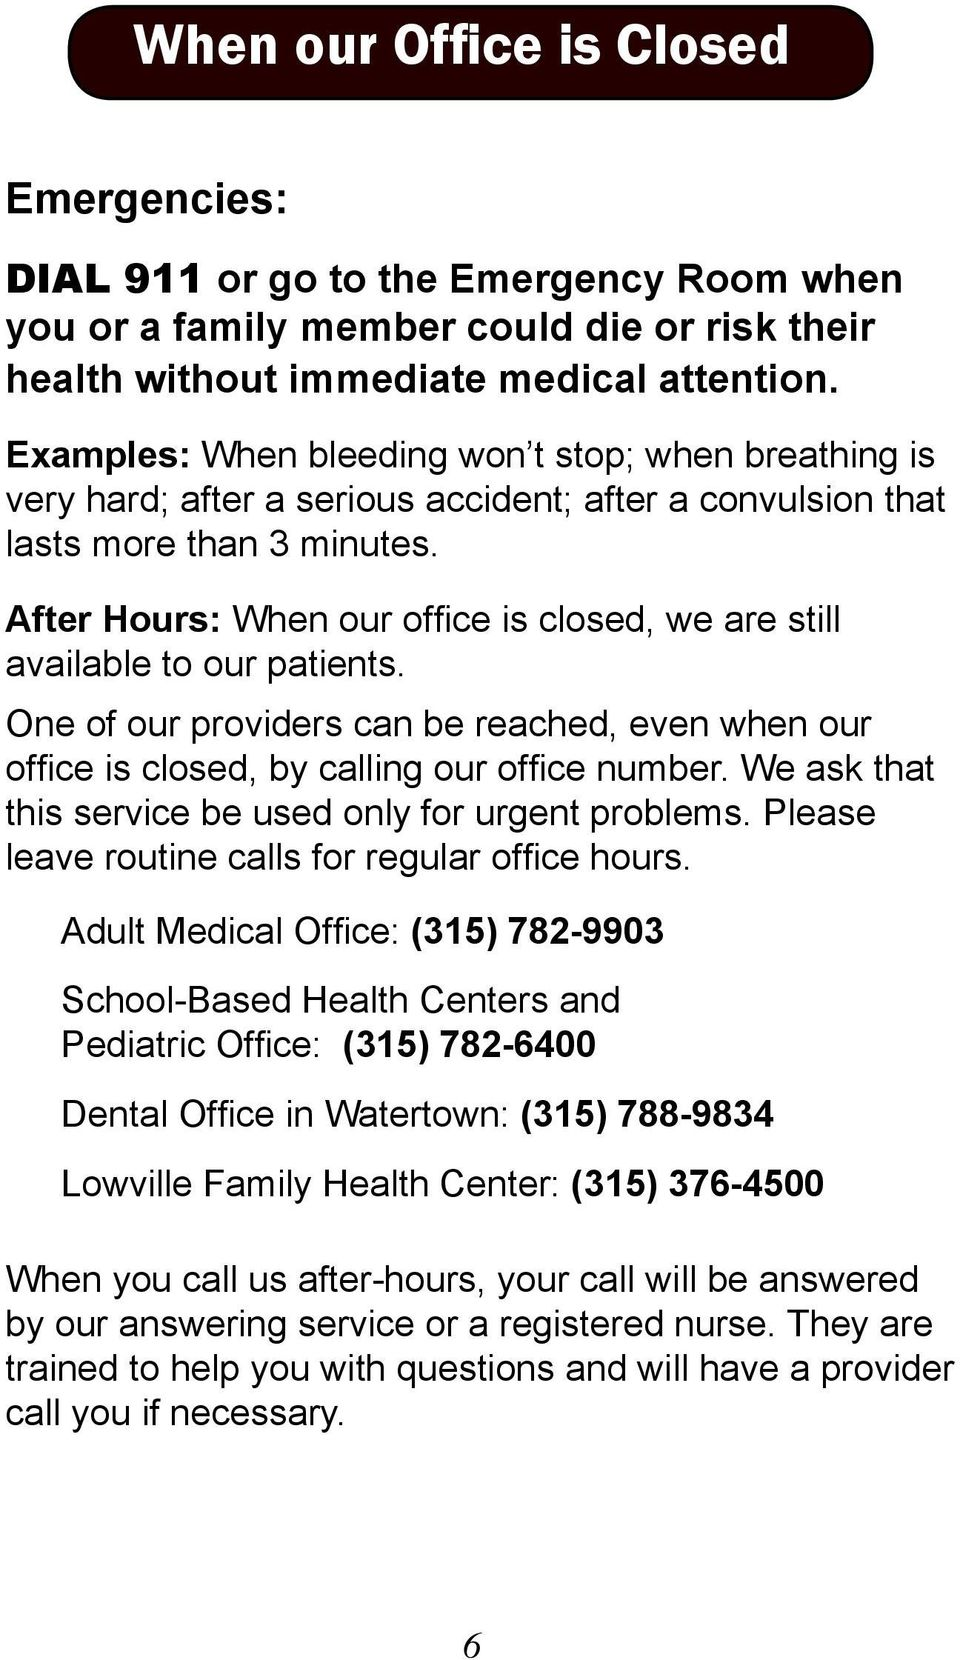 After Hours: When our office is closed, we are still available to our patients. One of our providers can be reached, even when our office is closed, by calling our office number.